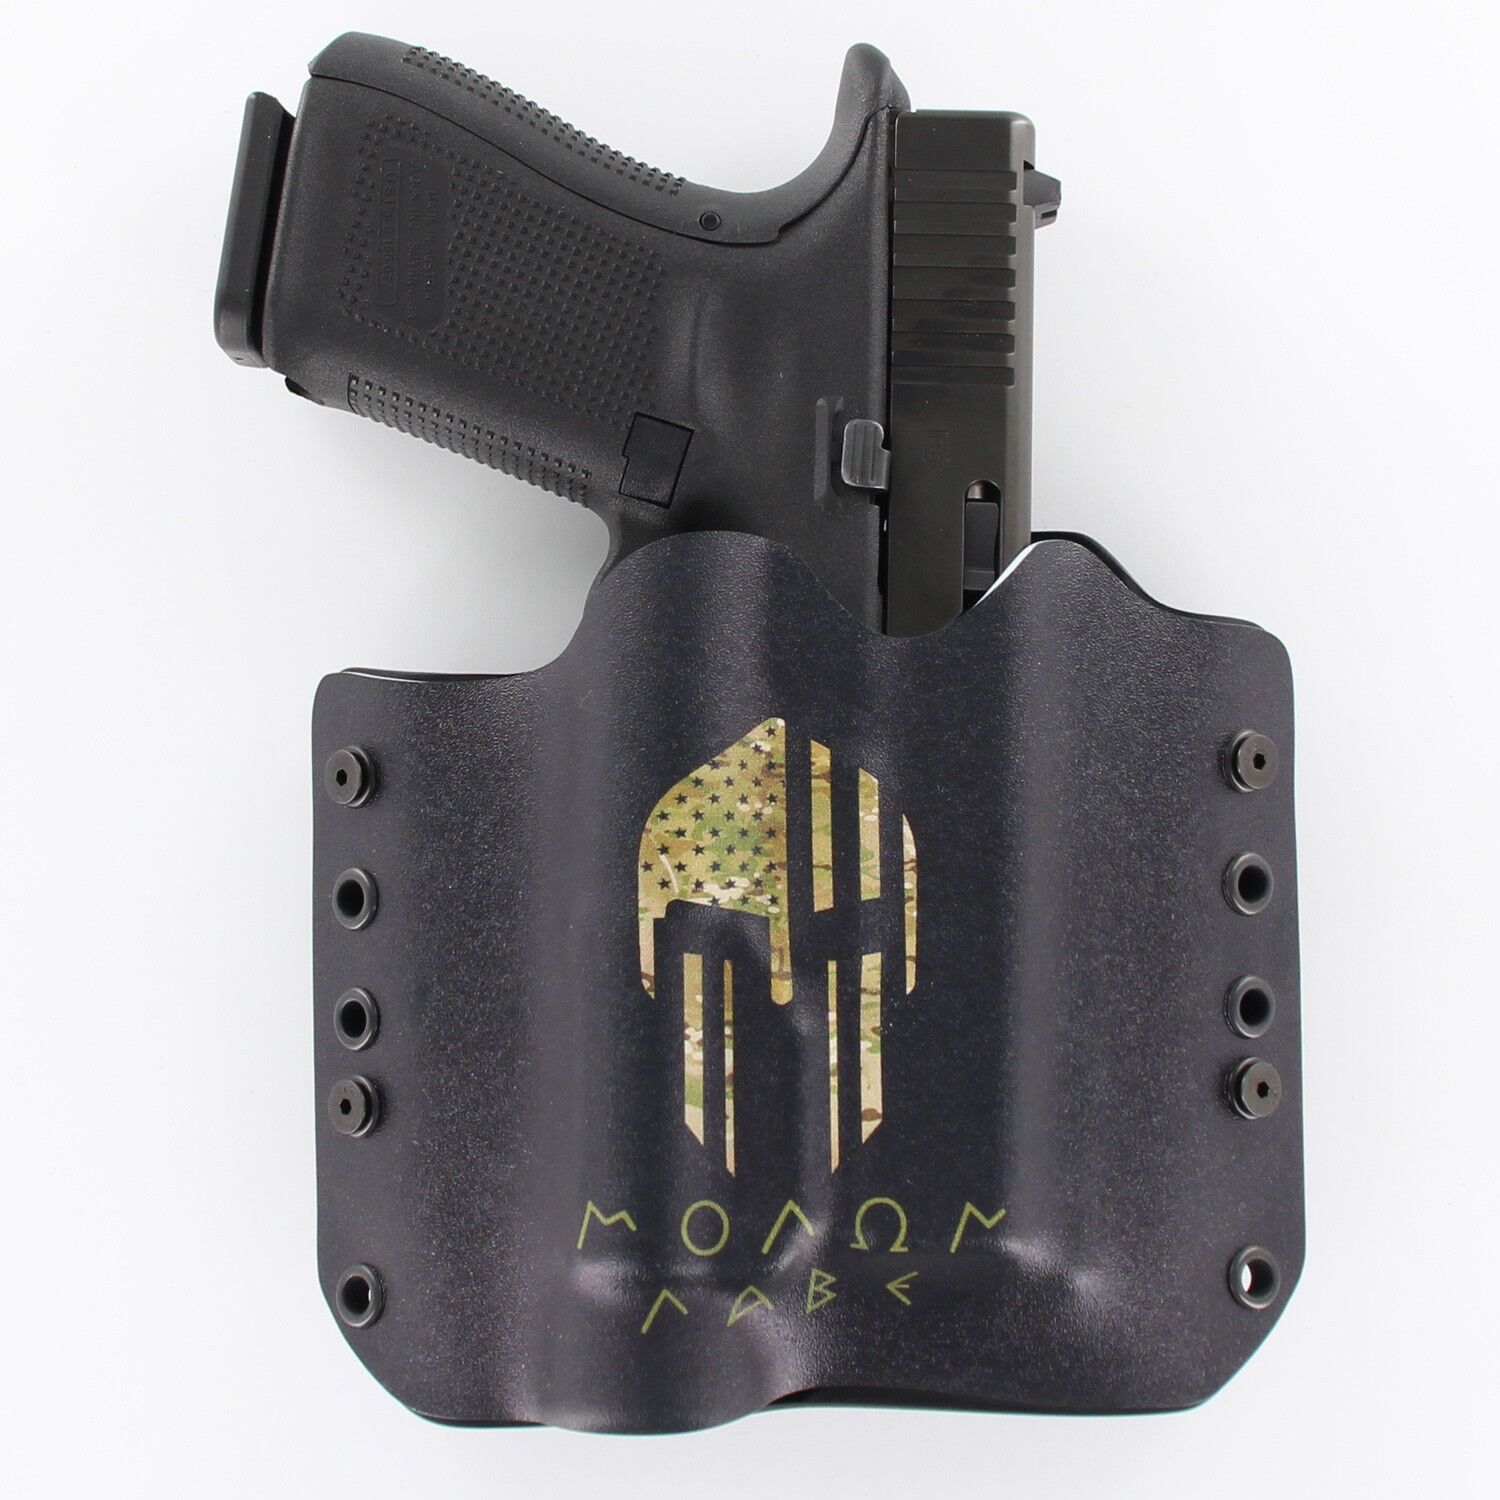 Ruger OWB Kydex Gun Holsters Molan Labe Camo